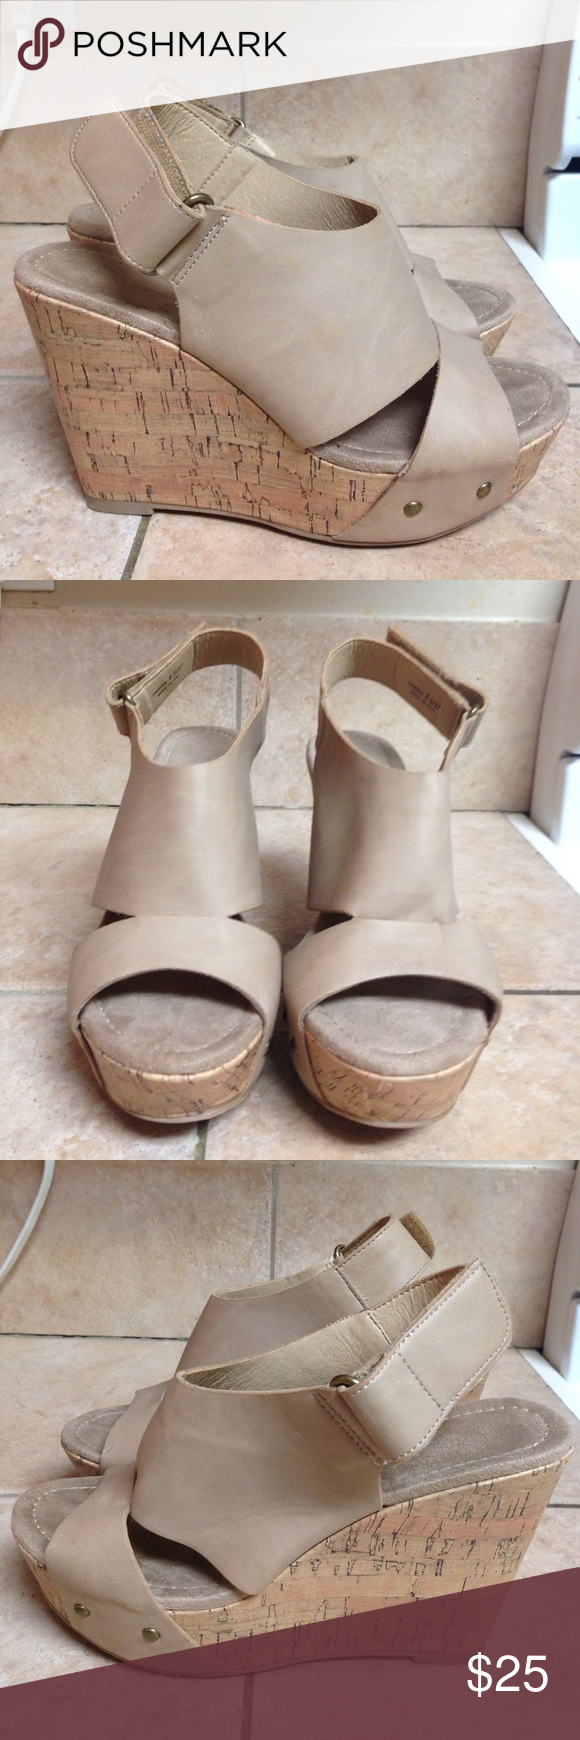 """Sexy heels Nude wedges. Worn once. Faux leather. Heel measures approx. 3"""" and 1 1/4"""" platform. Laundry Shoes Wedges"""